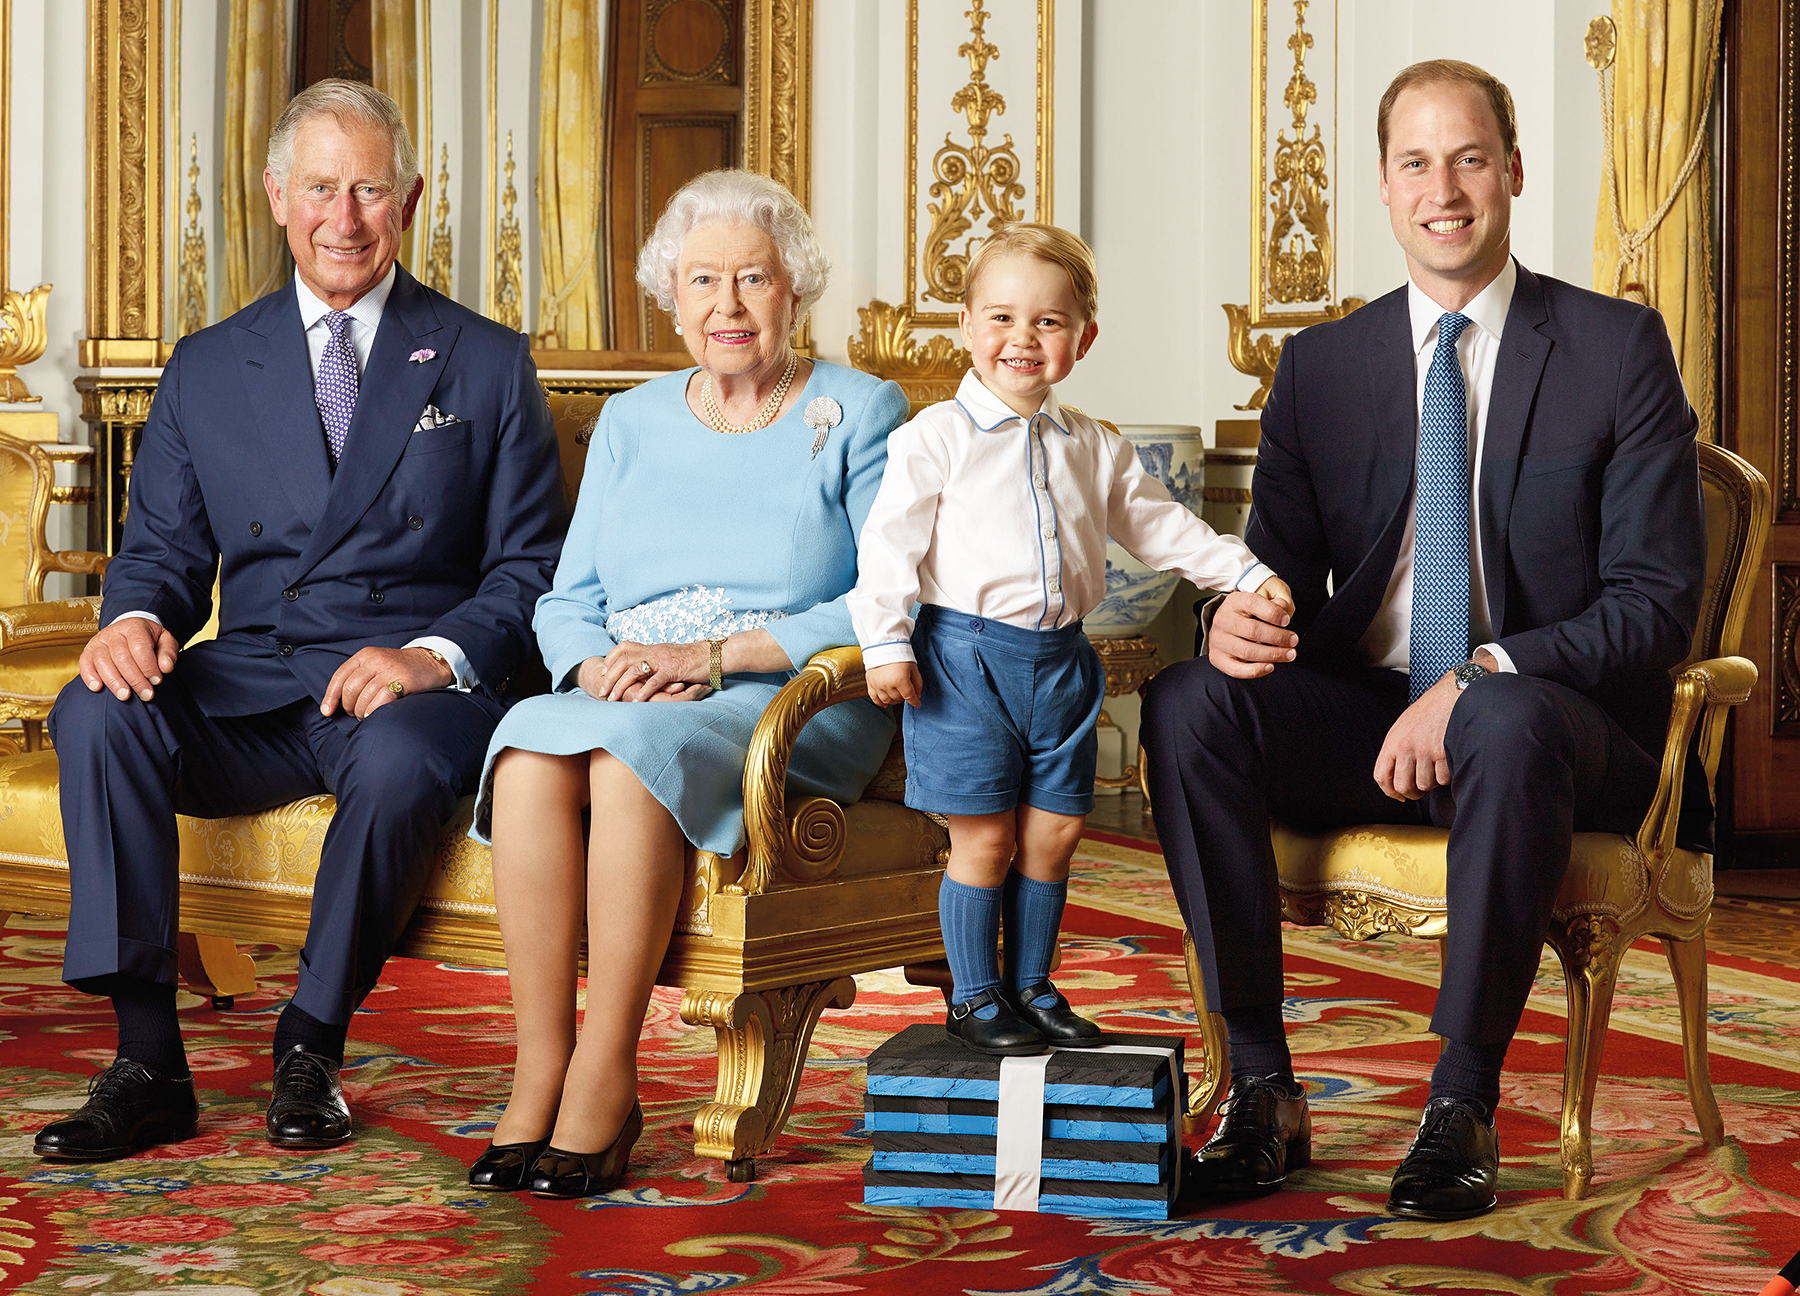 Prince Charles, Queen Elizabeth, Prince George and Prince William